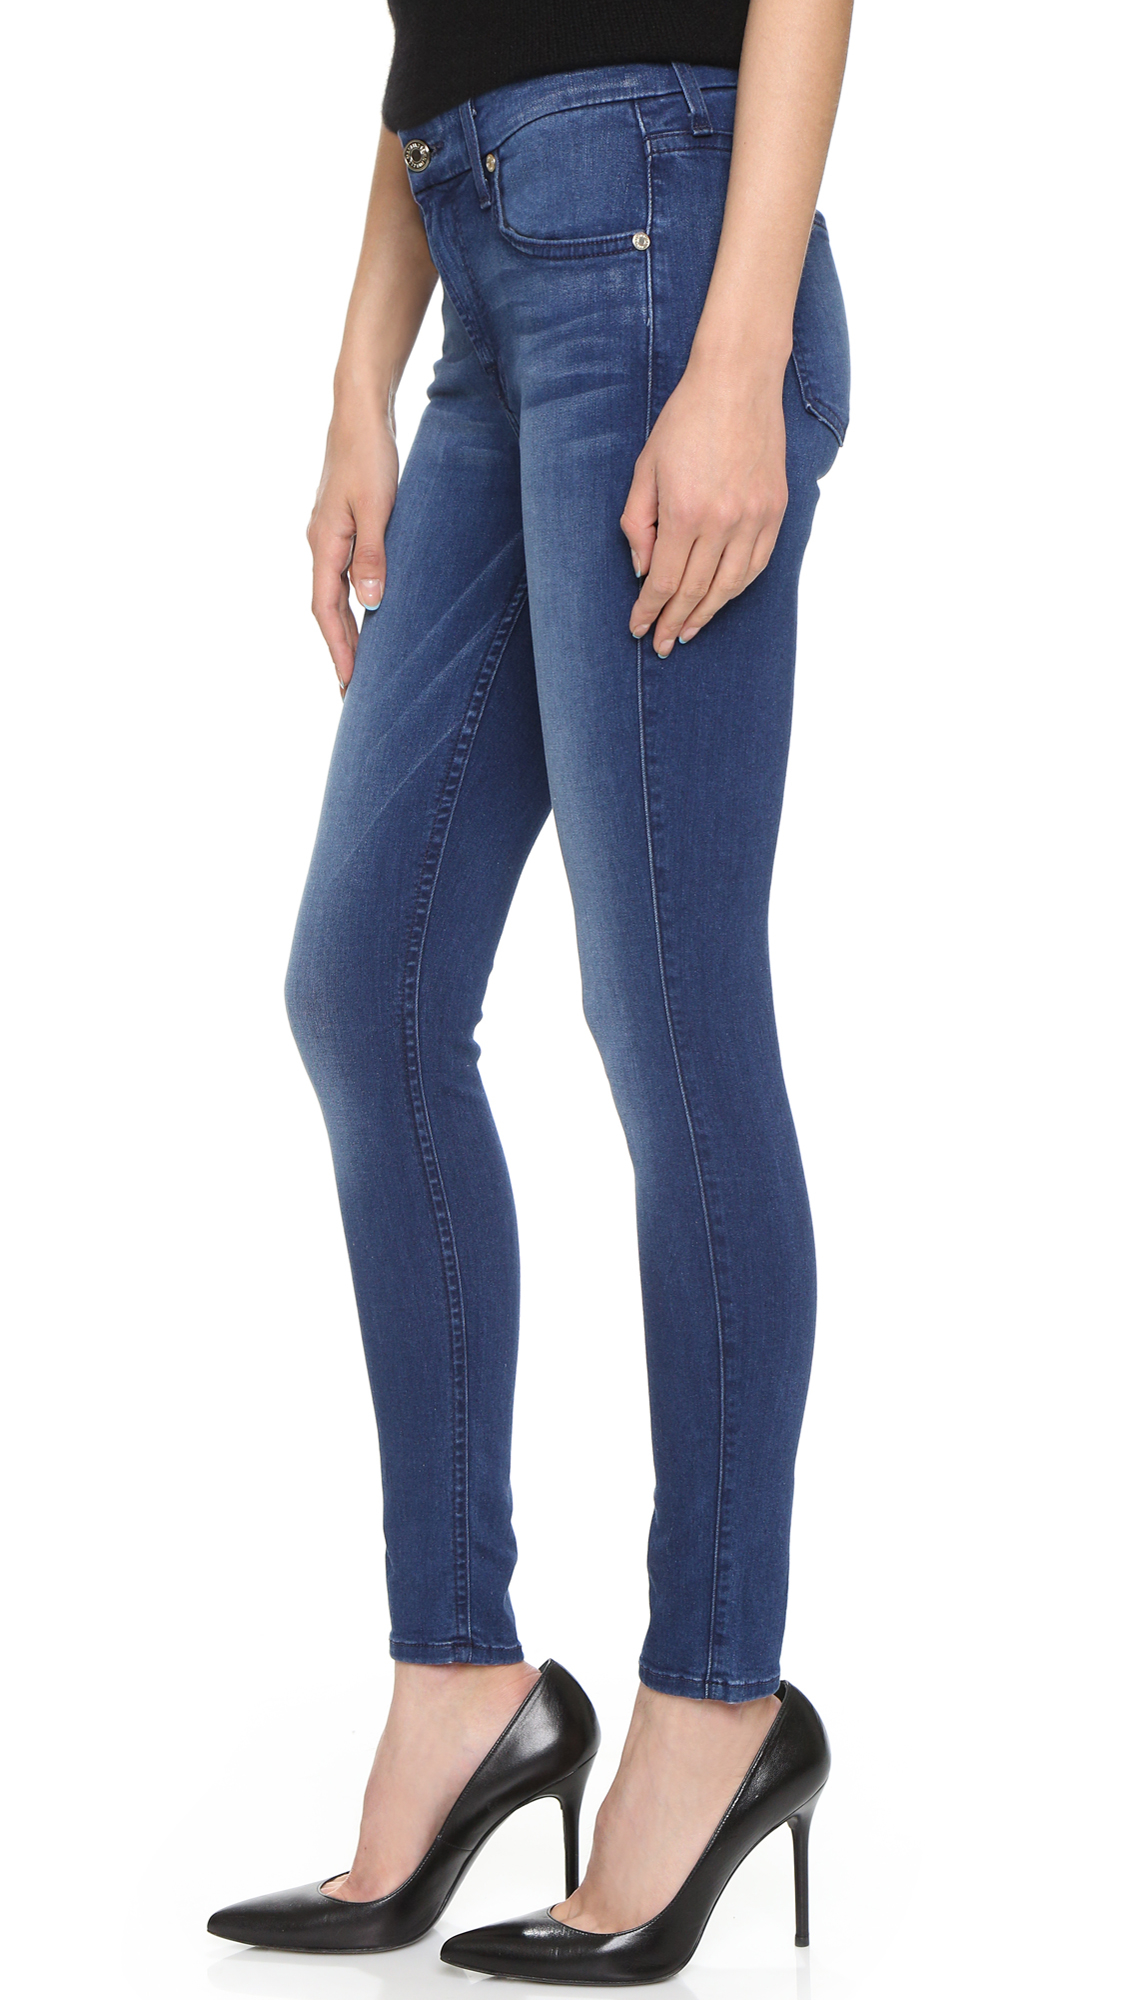 7 for all mankind Mid Rise Ankle Skinny Jeans in Blue | Lyst